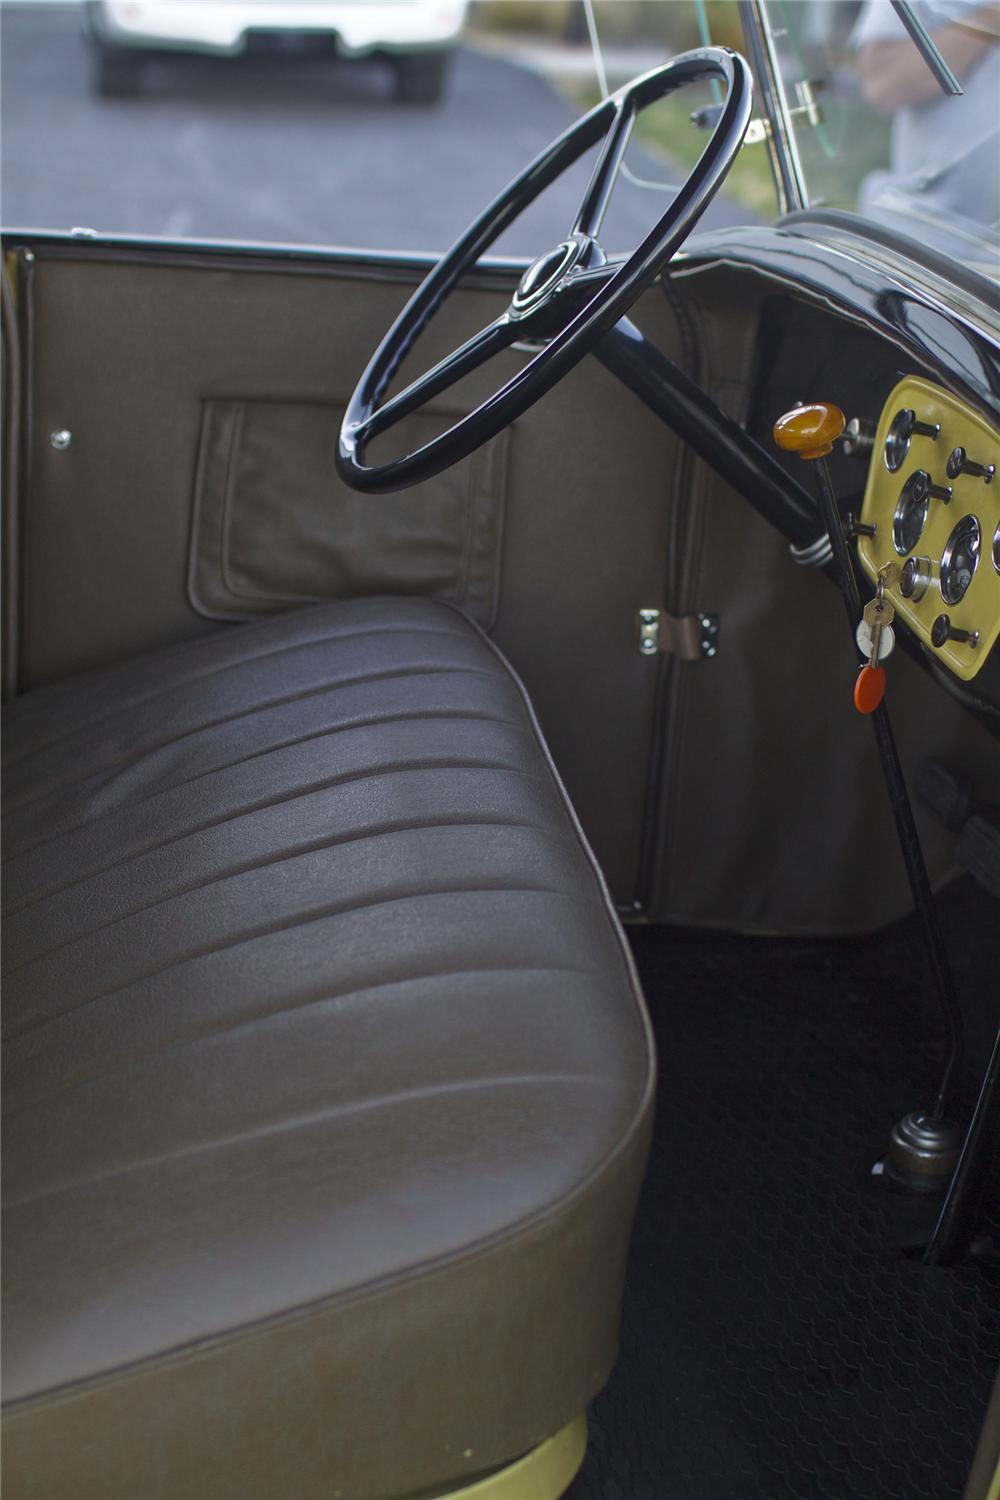 1932 CHEVROLET DELUXE ROADSTER - Interior - 97211